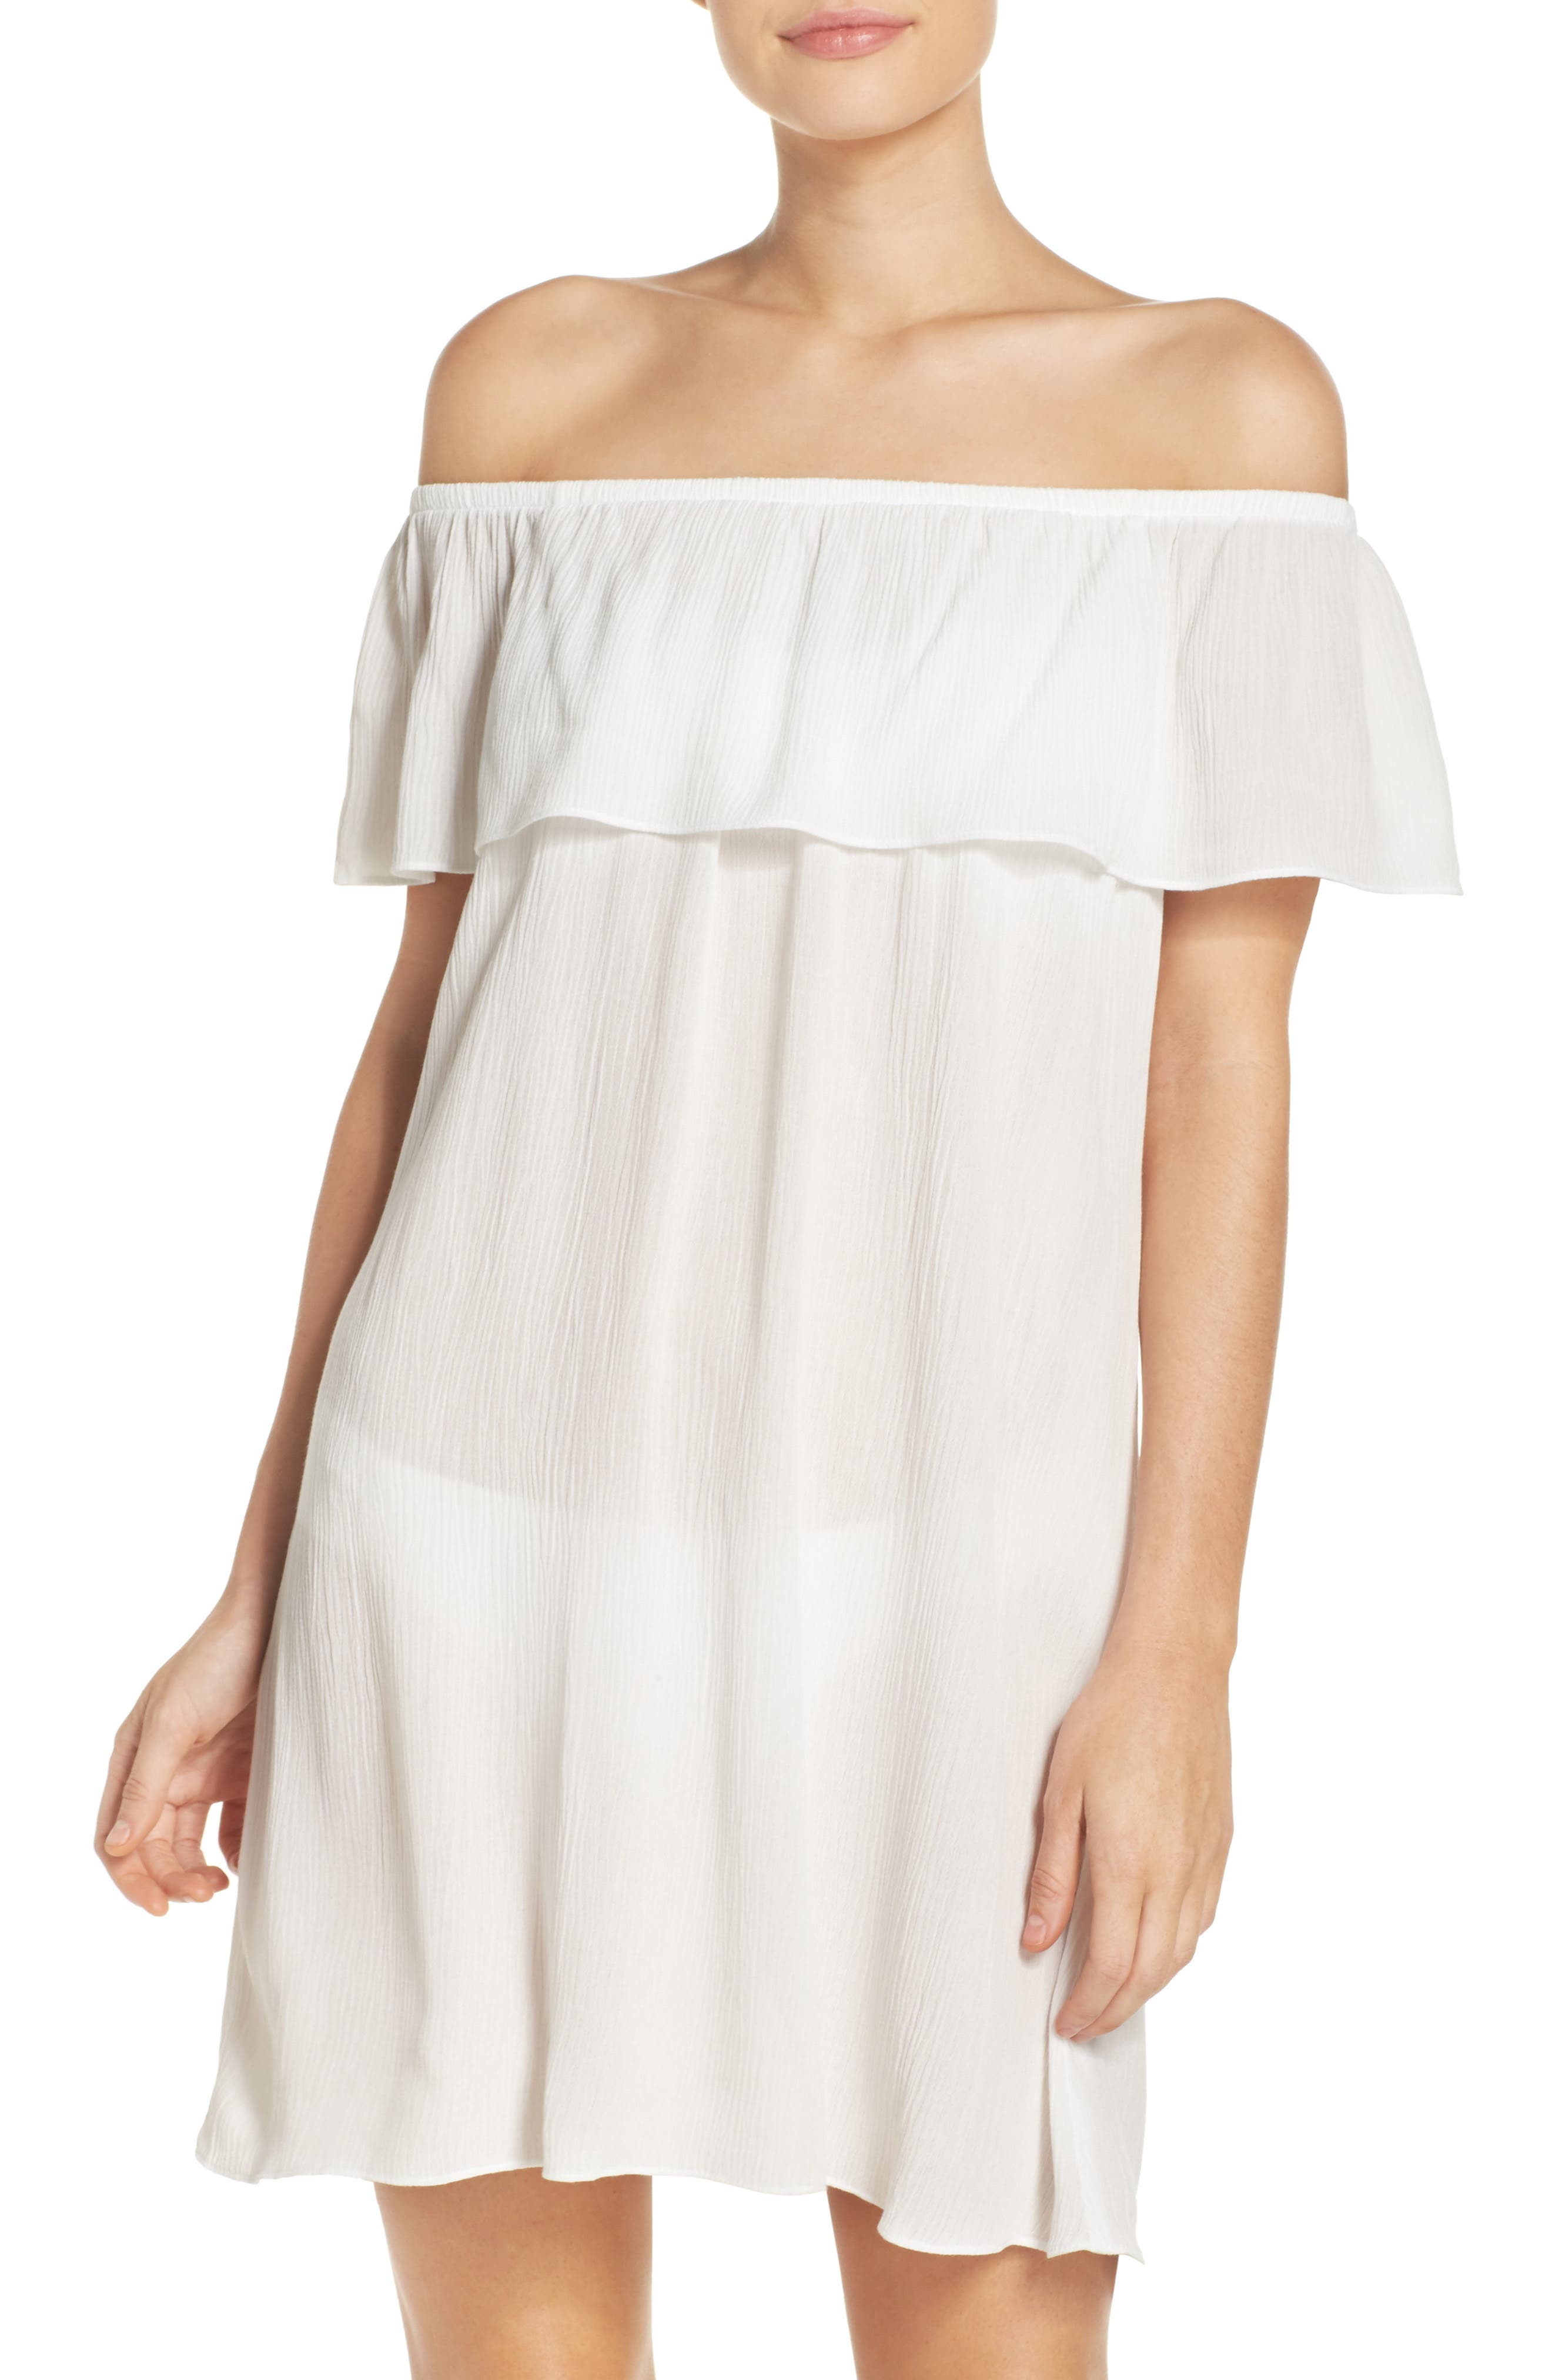 Southern Belle Off the Shoulder Cover-Up Dress,                         Main,                         color, White